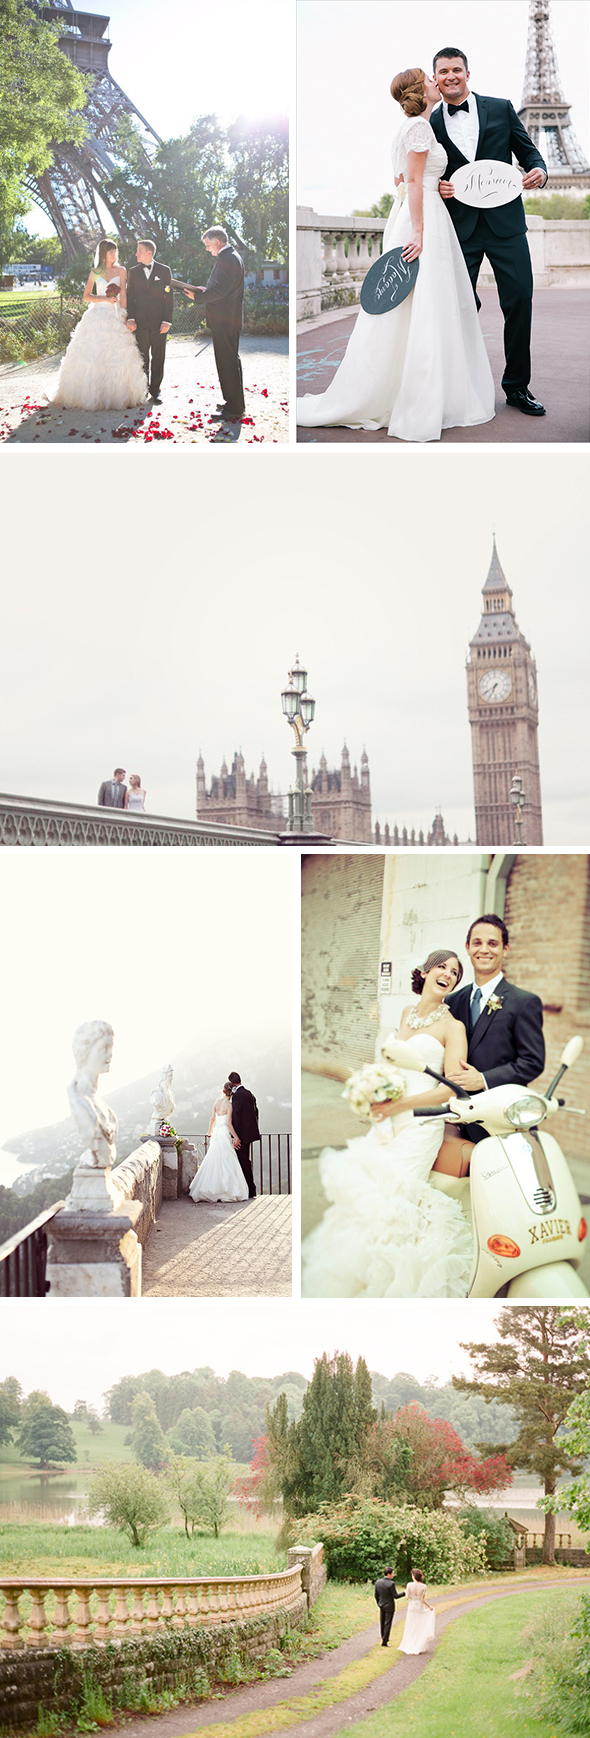 destination wedding location in europe